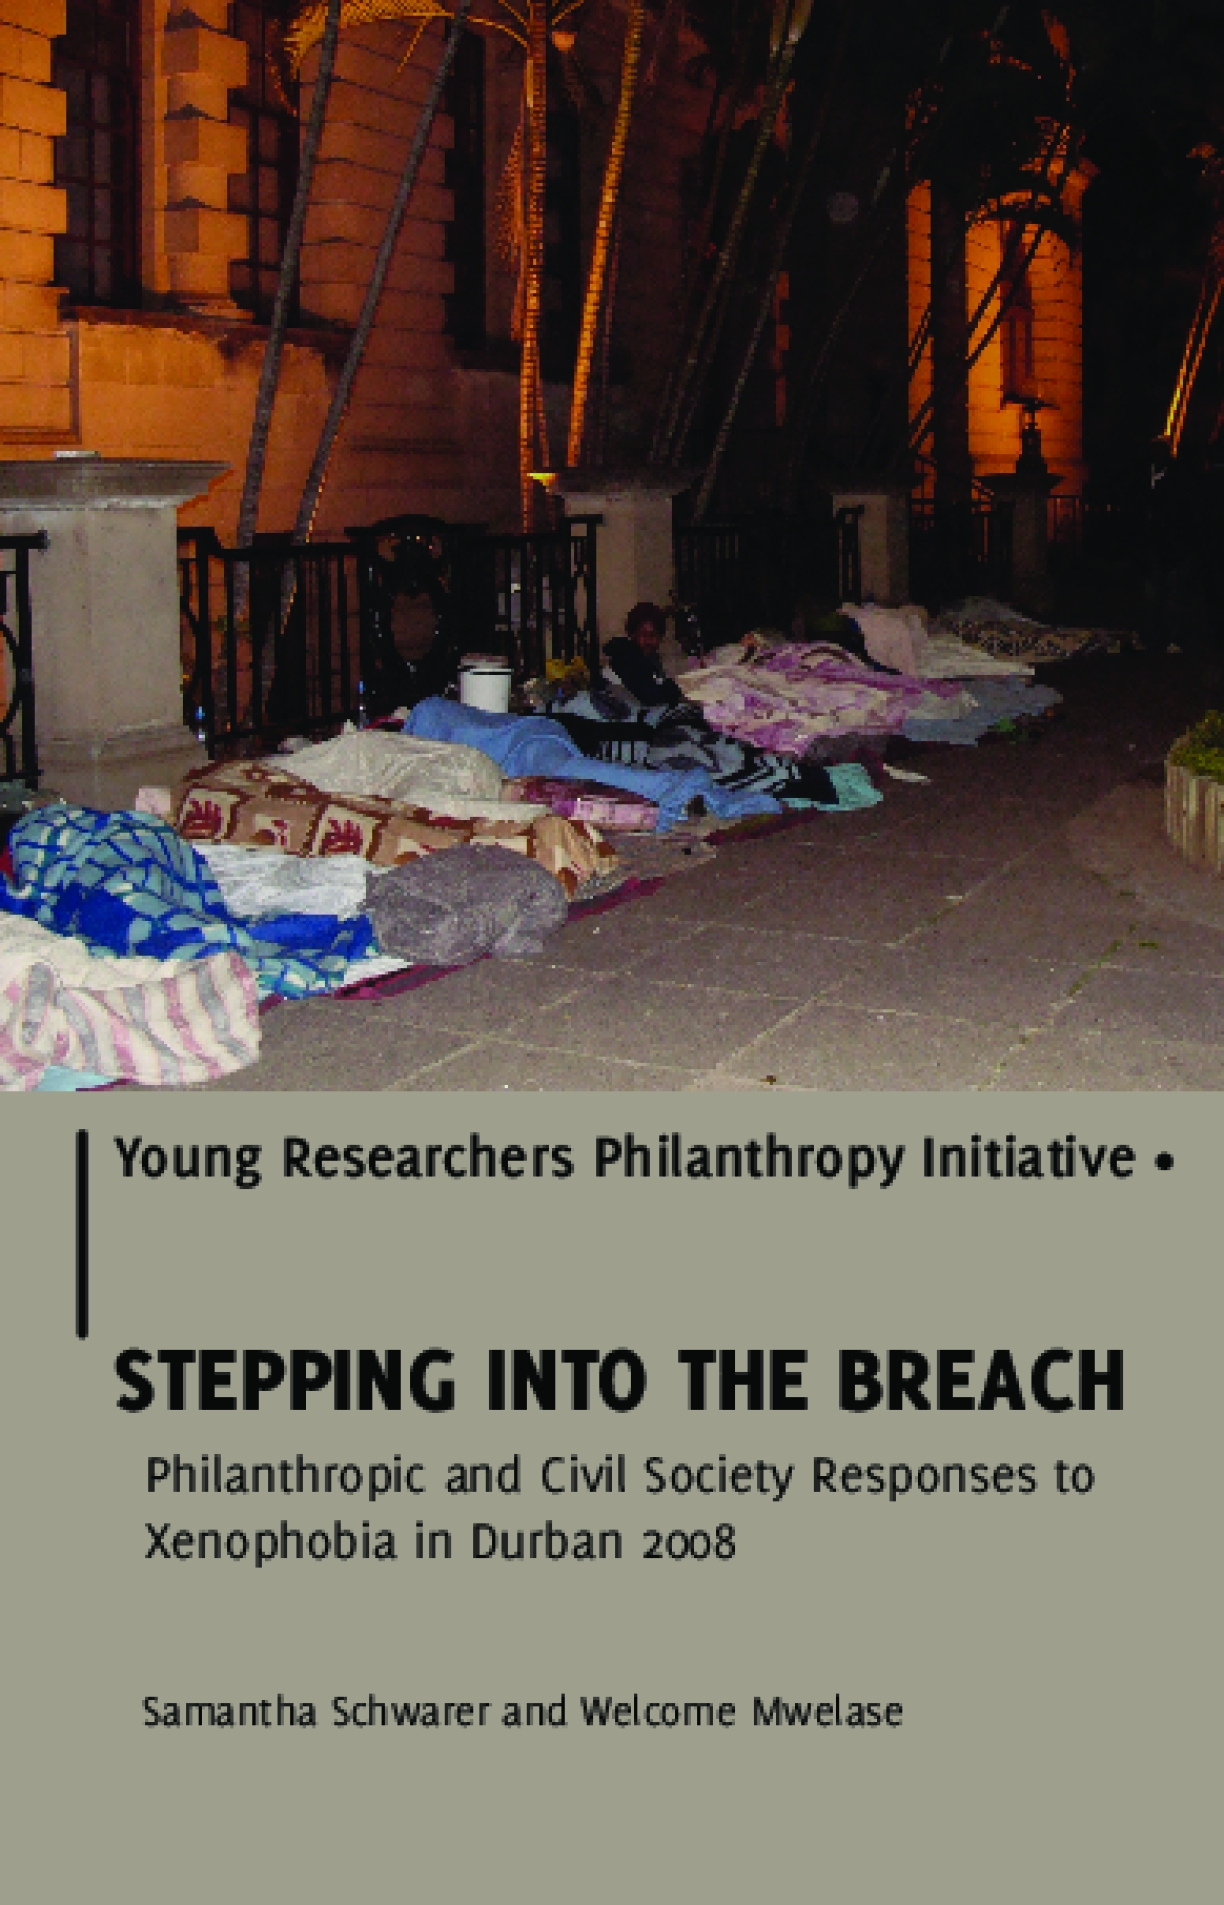 Stepping Into the Breach: Philanthropic and Civil Society Responses to Xenophobia in Durban 2008